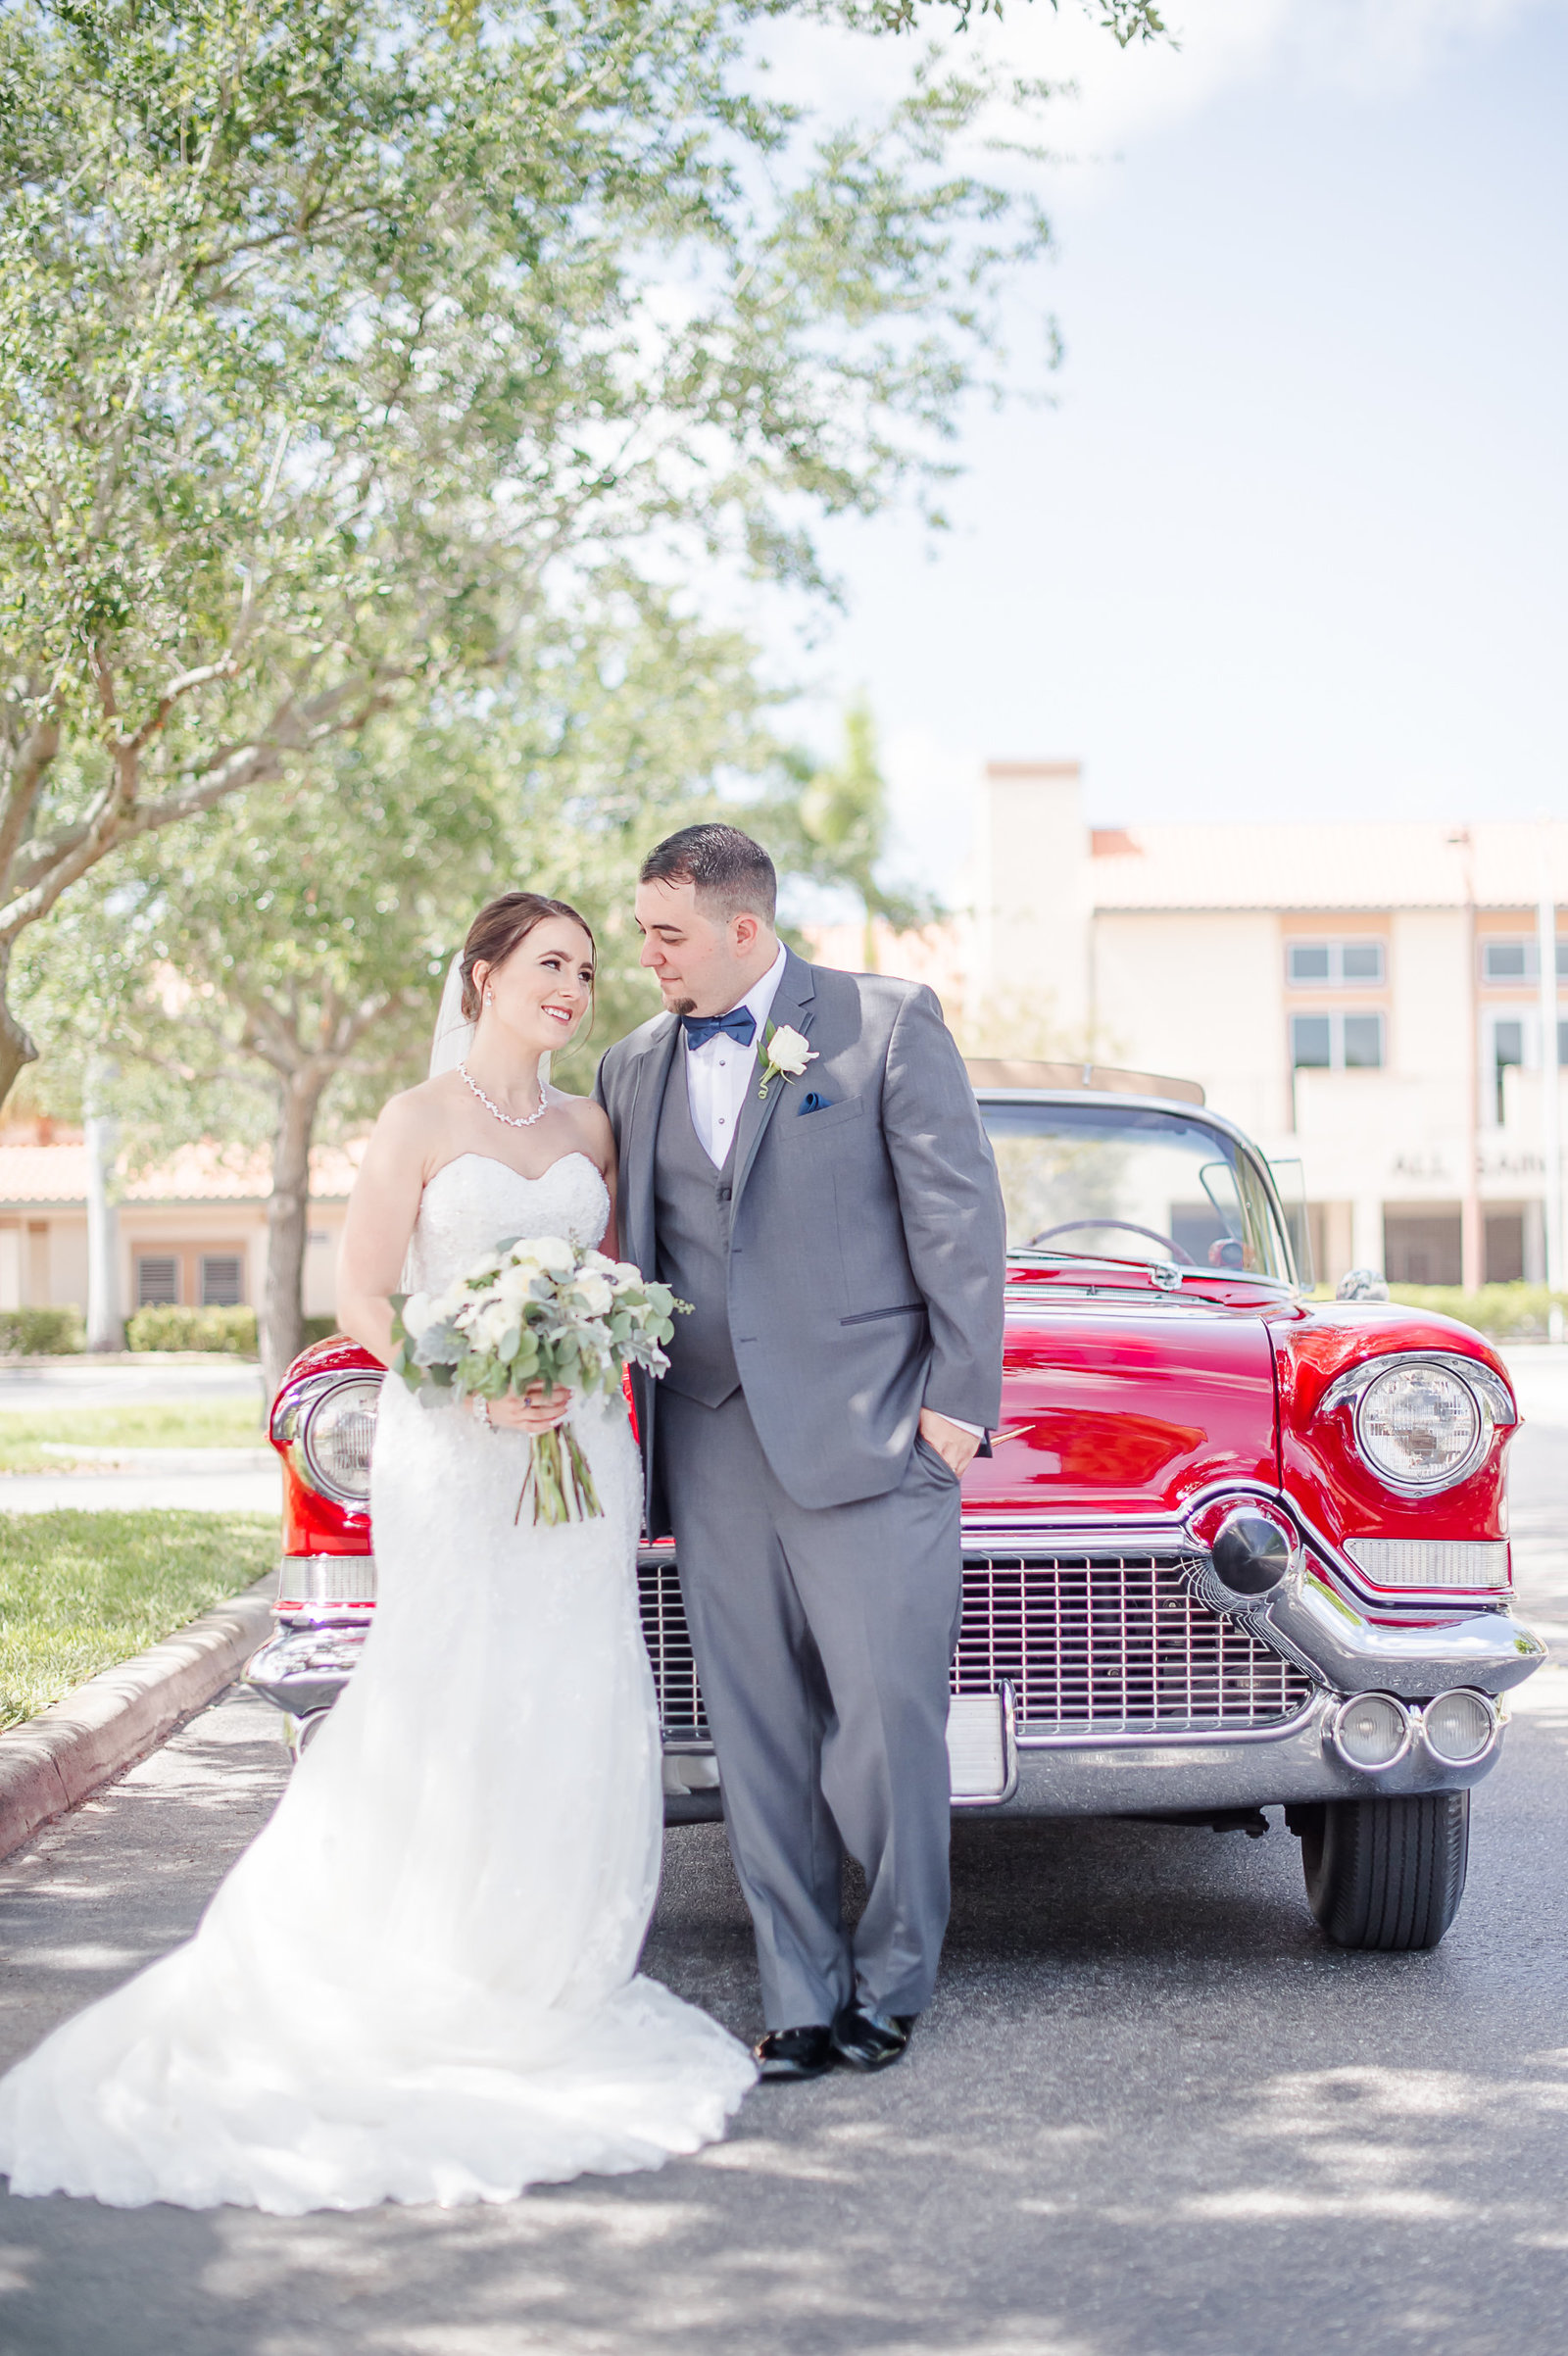 Newlywed in red classic car - Country Club at Mirasol Wedding - Palm Beach Wedding Photography by Palm Beach Photography, Inc.